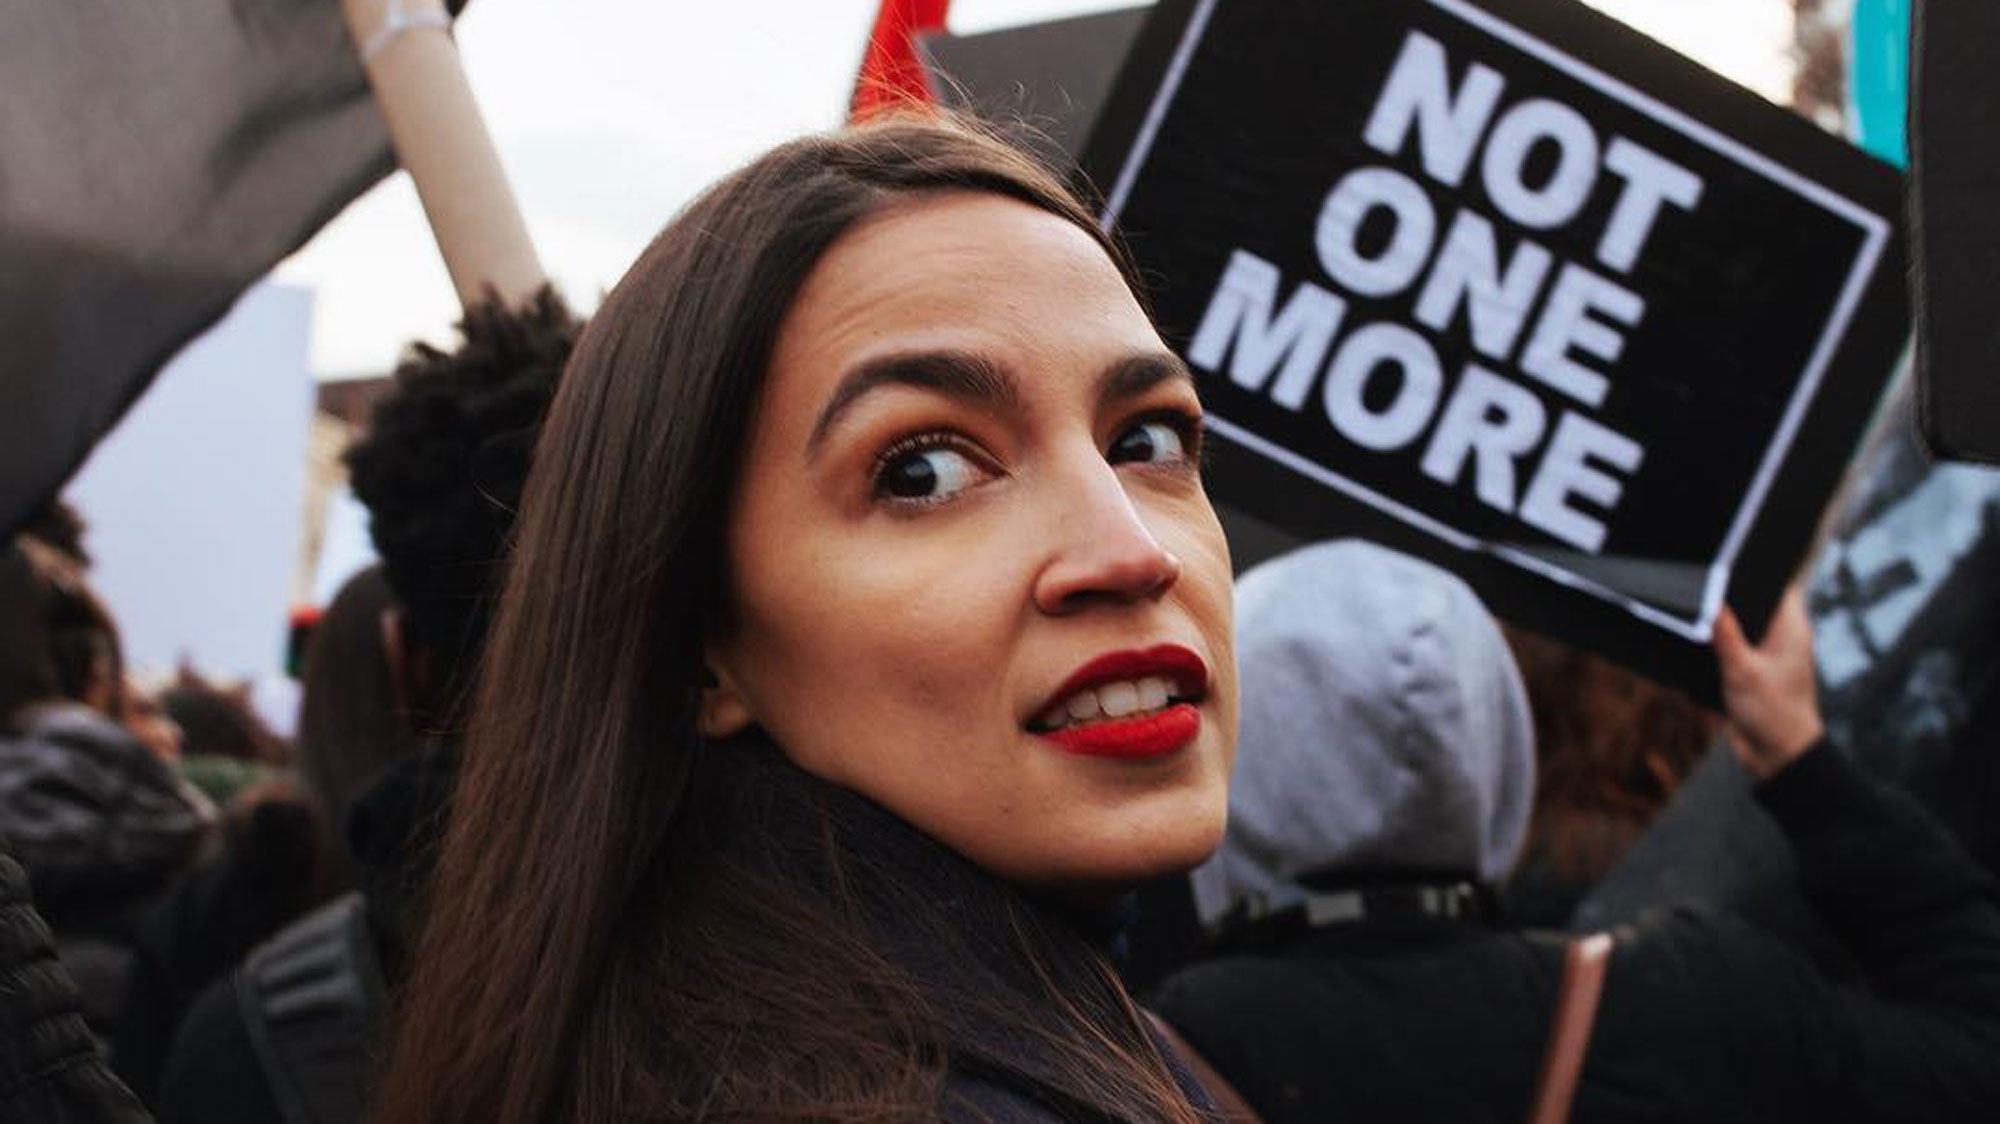 Democratic Socialist Alexandria Ocasio-Cortez Defeats Joe Crowley in NY Primary